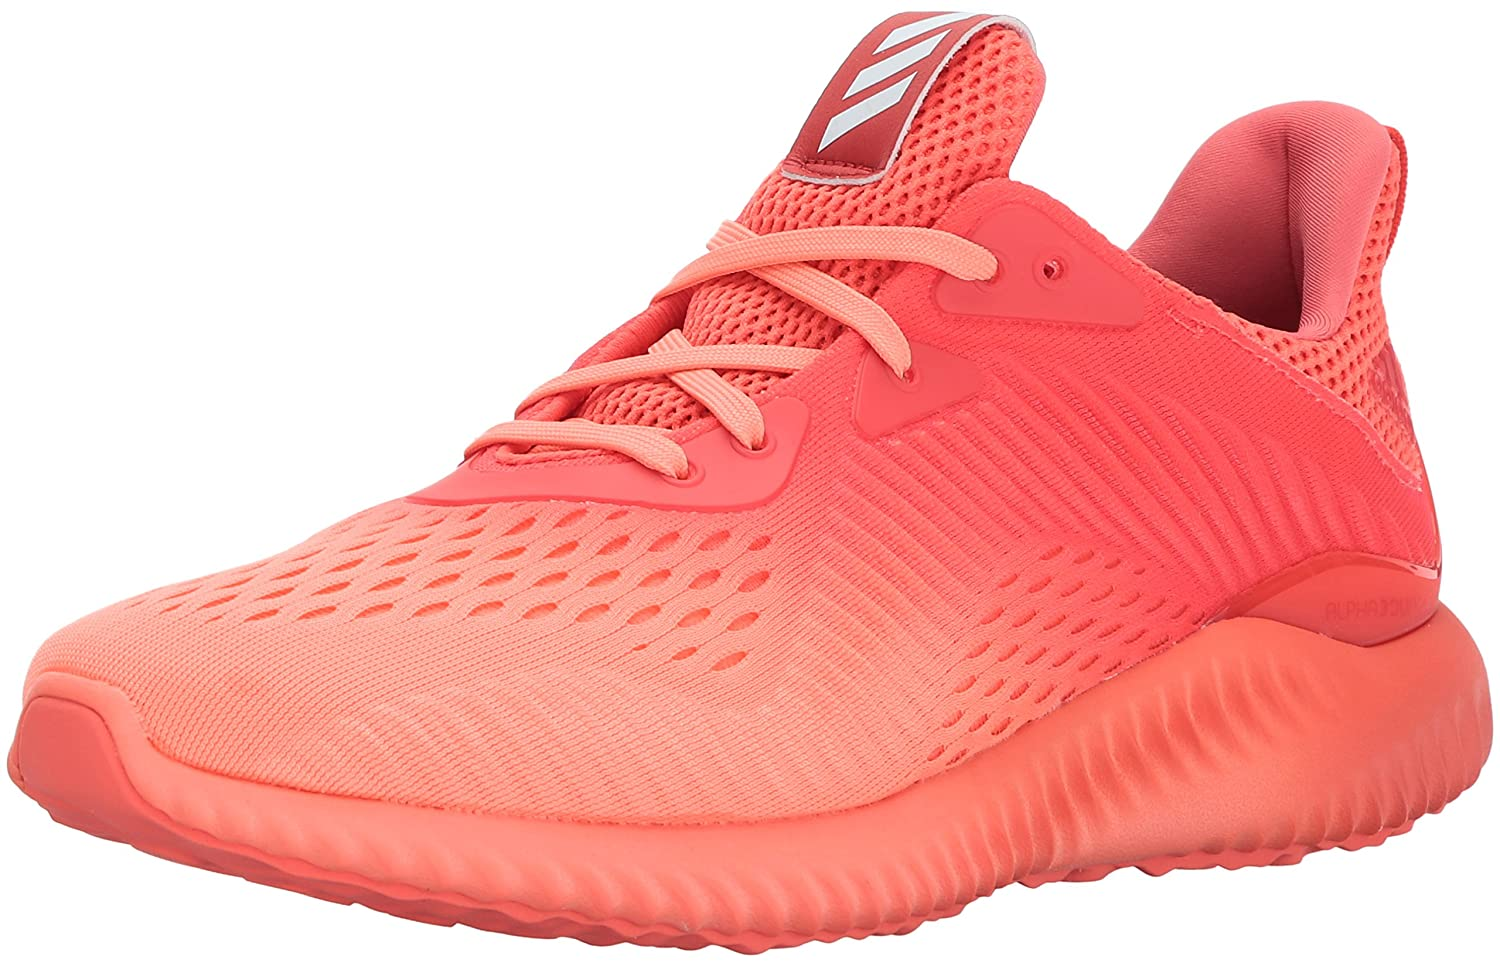 adidas Women's Alphabounce Em W Running Shoe B01N56QDXD 10 B(M) US|Easy Coral/Sun Glow/Grey One